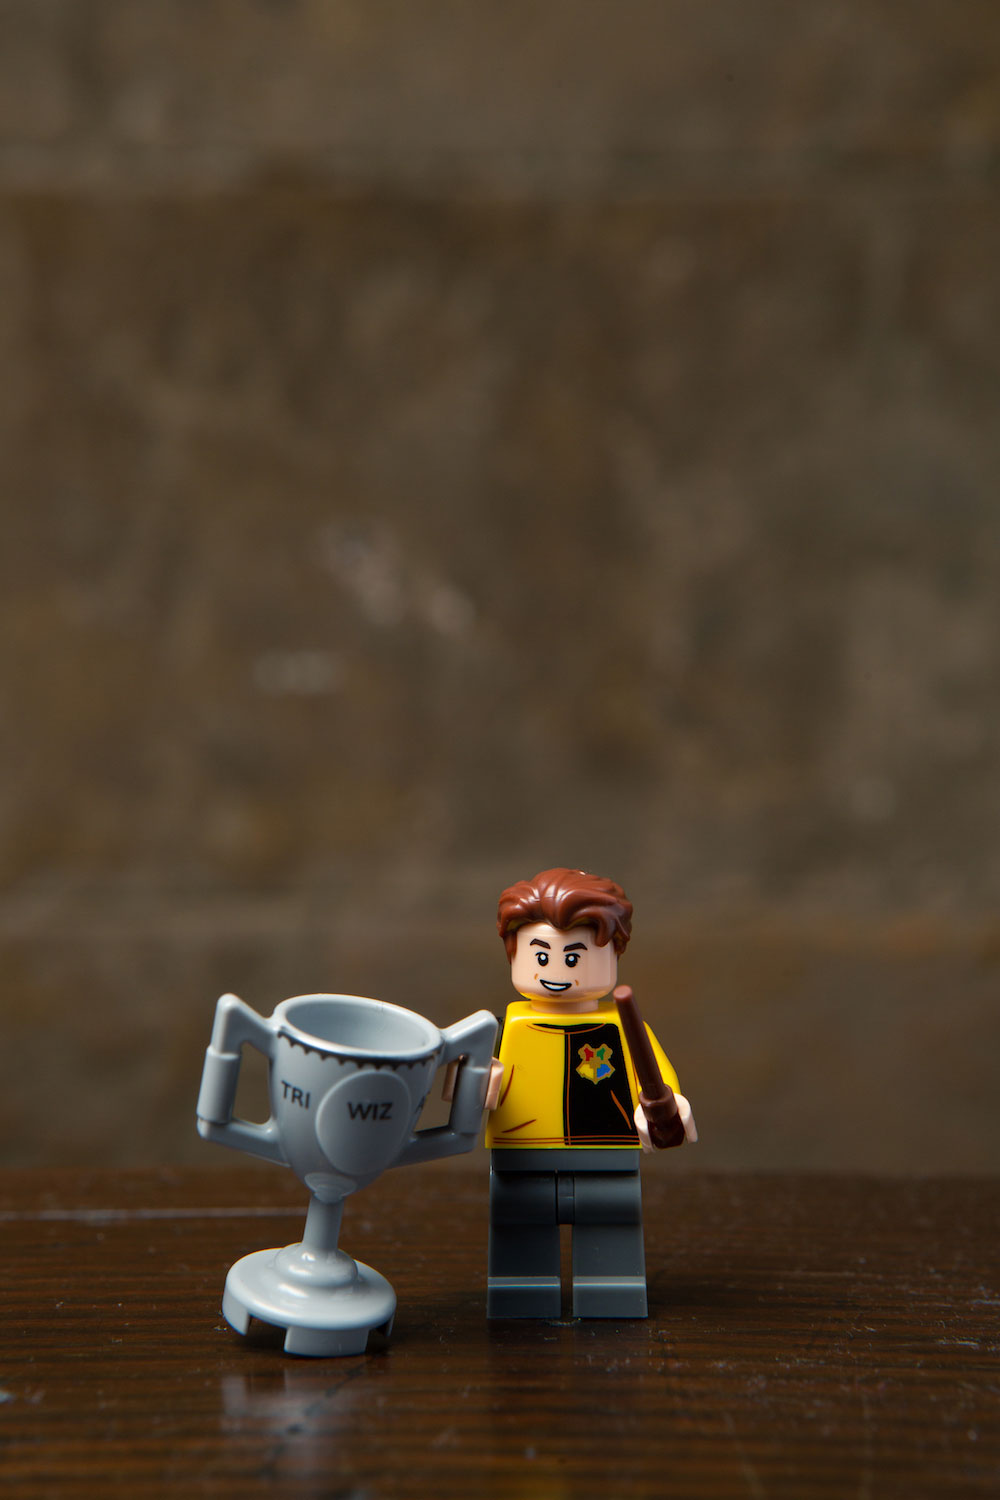 Hufflepuffs represent! Cedric's LEGO minifigure drags his trophy along in his Triwizard Tournament uniform.